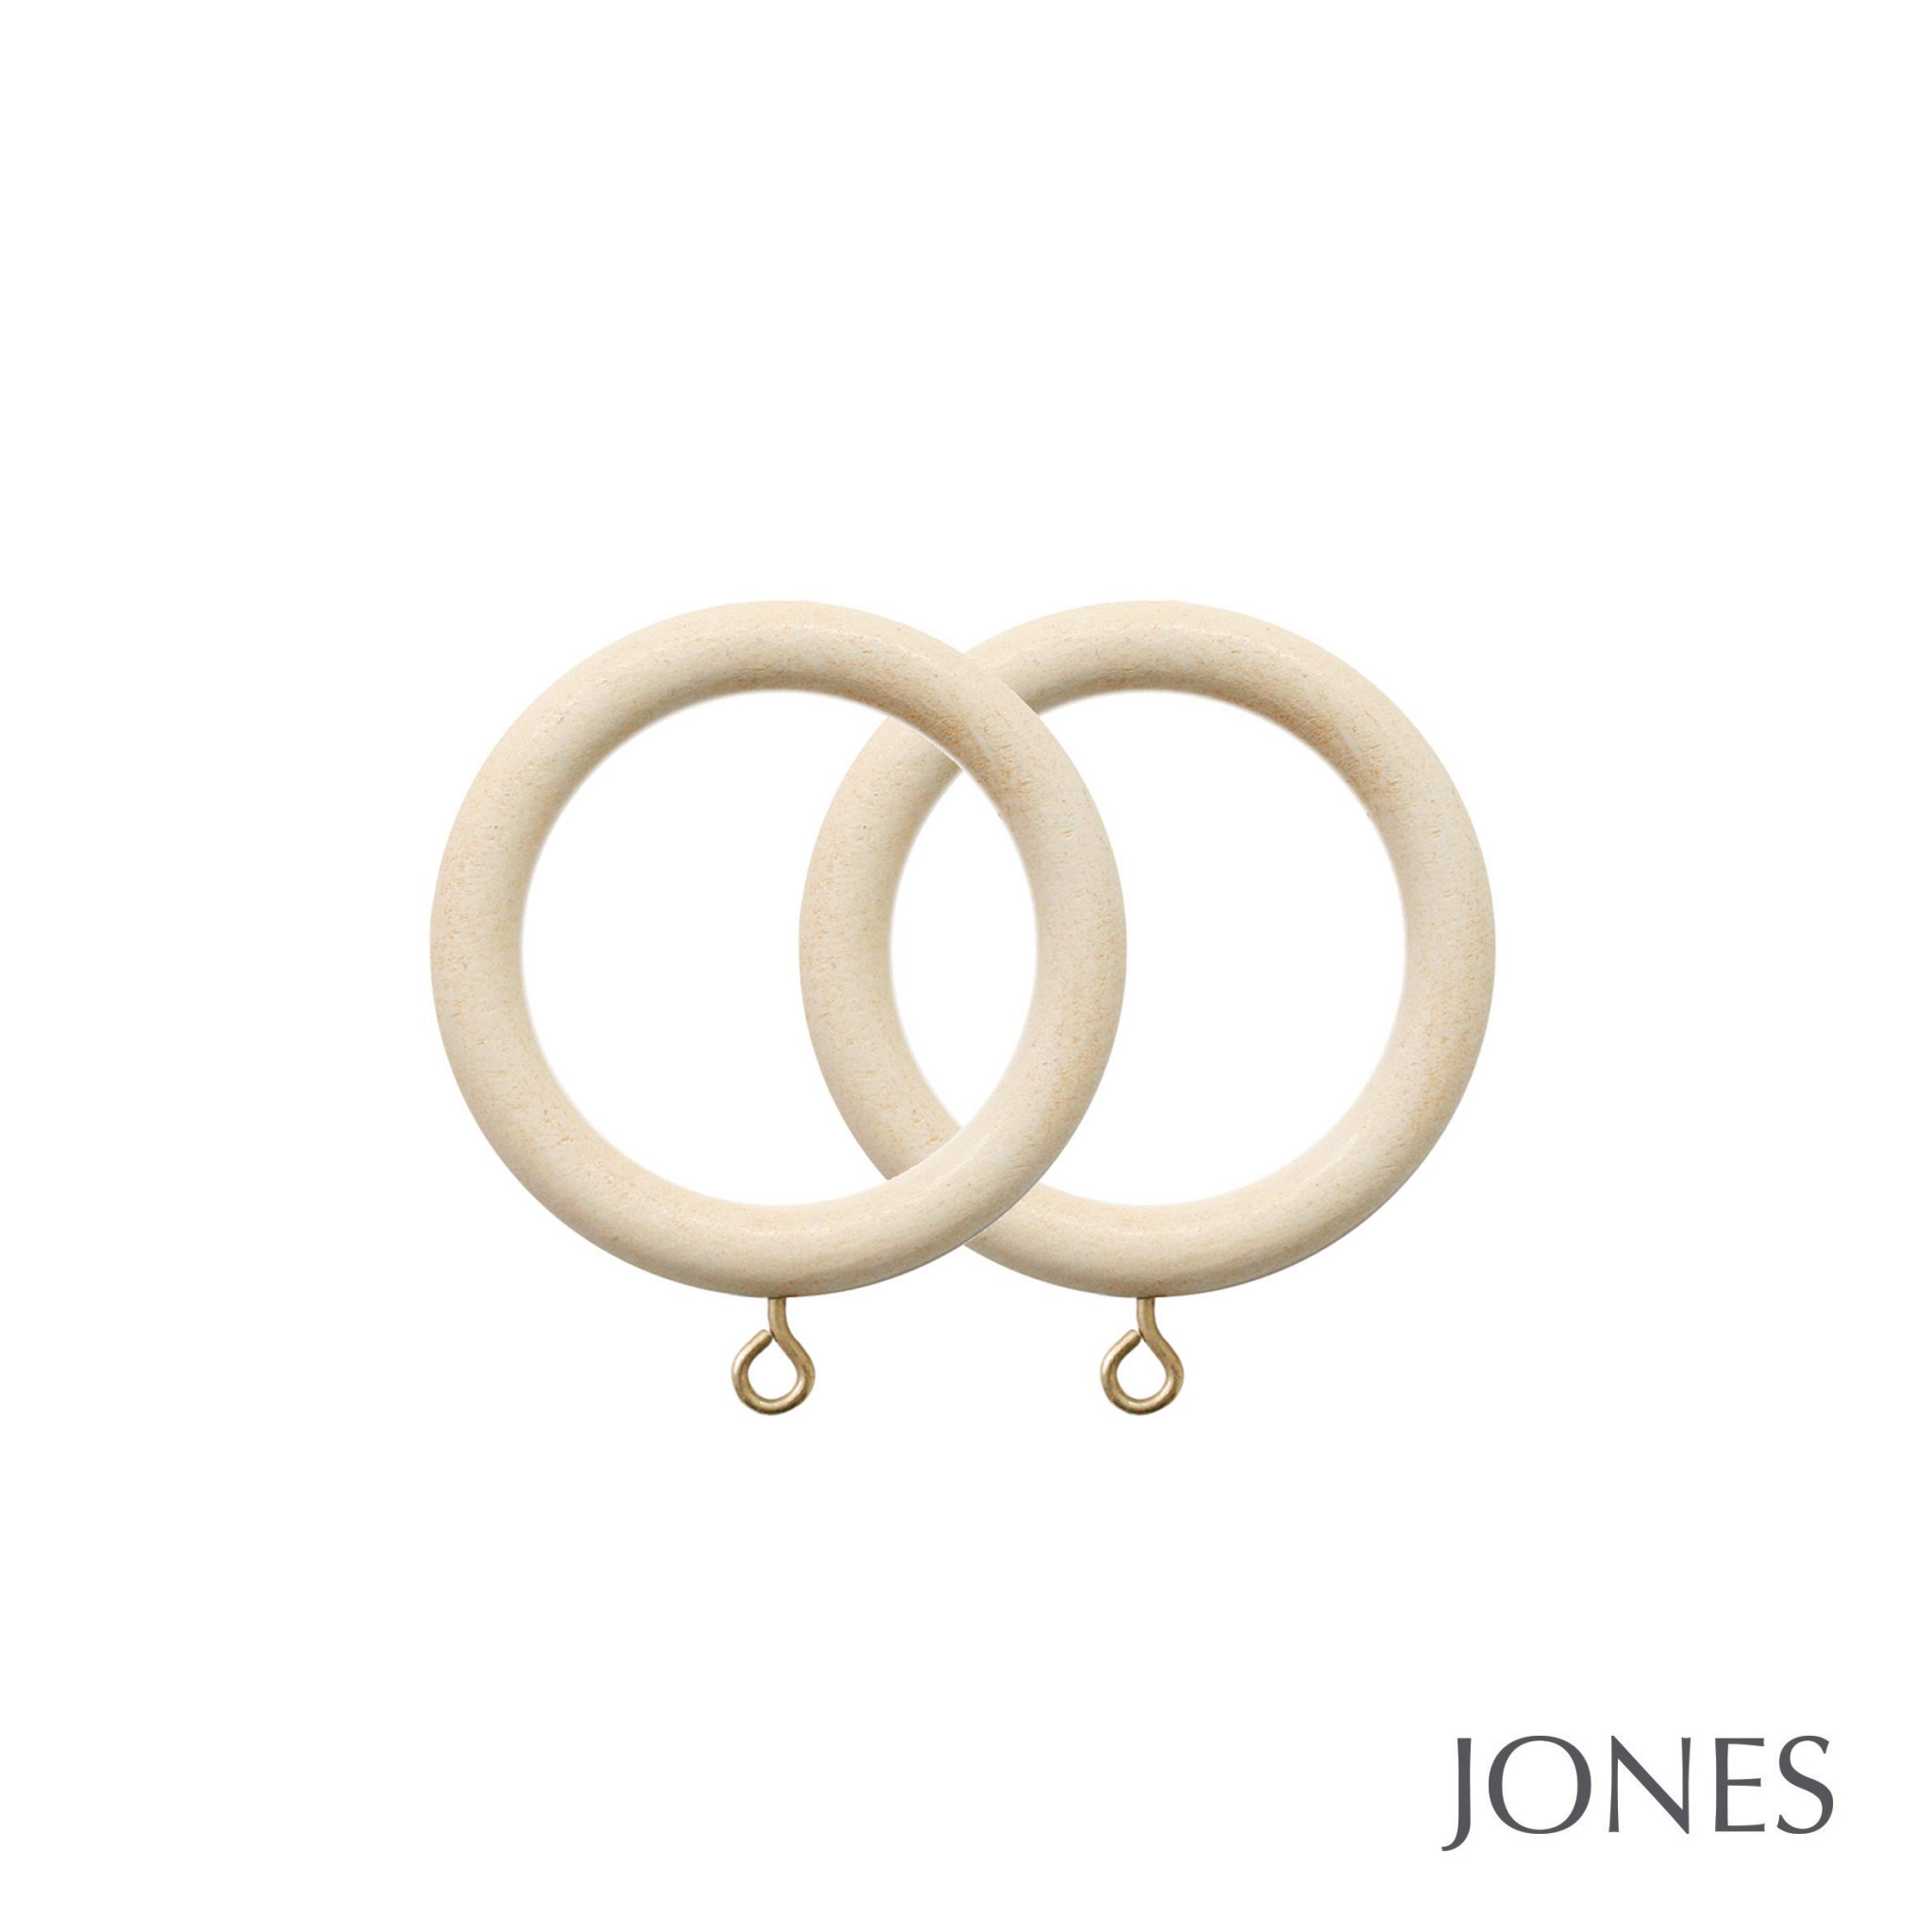 Jones Cathedral Handcrafted 30mm Curtain Rings